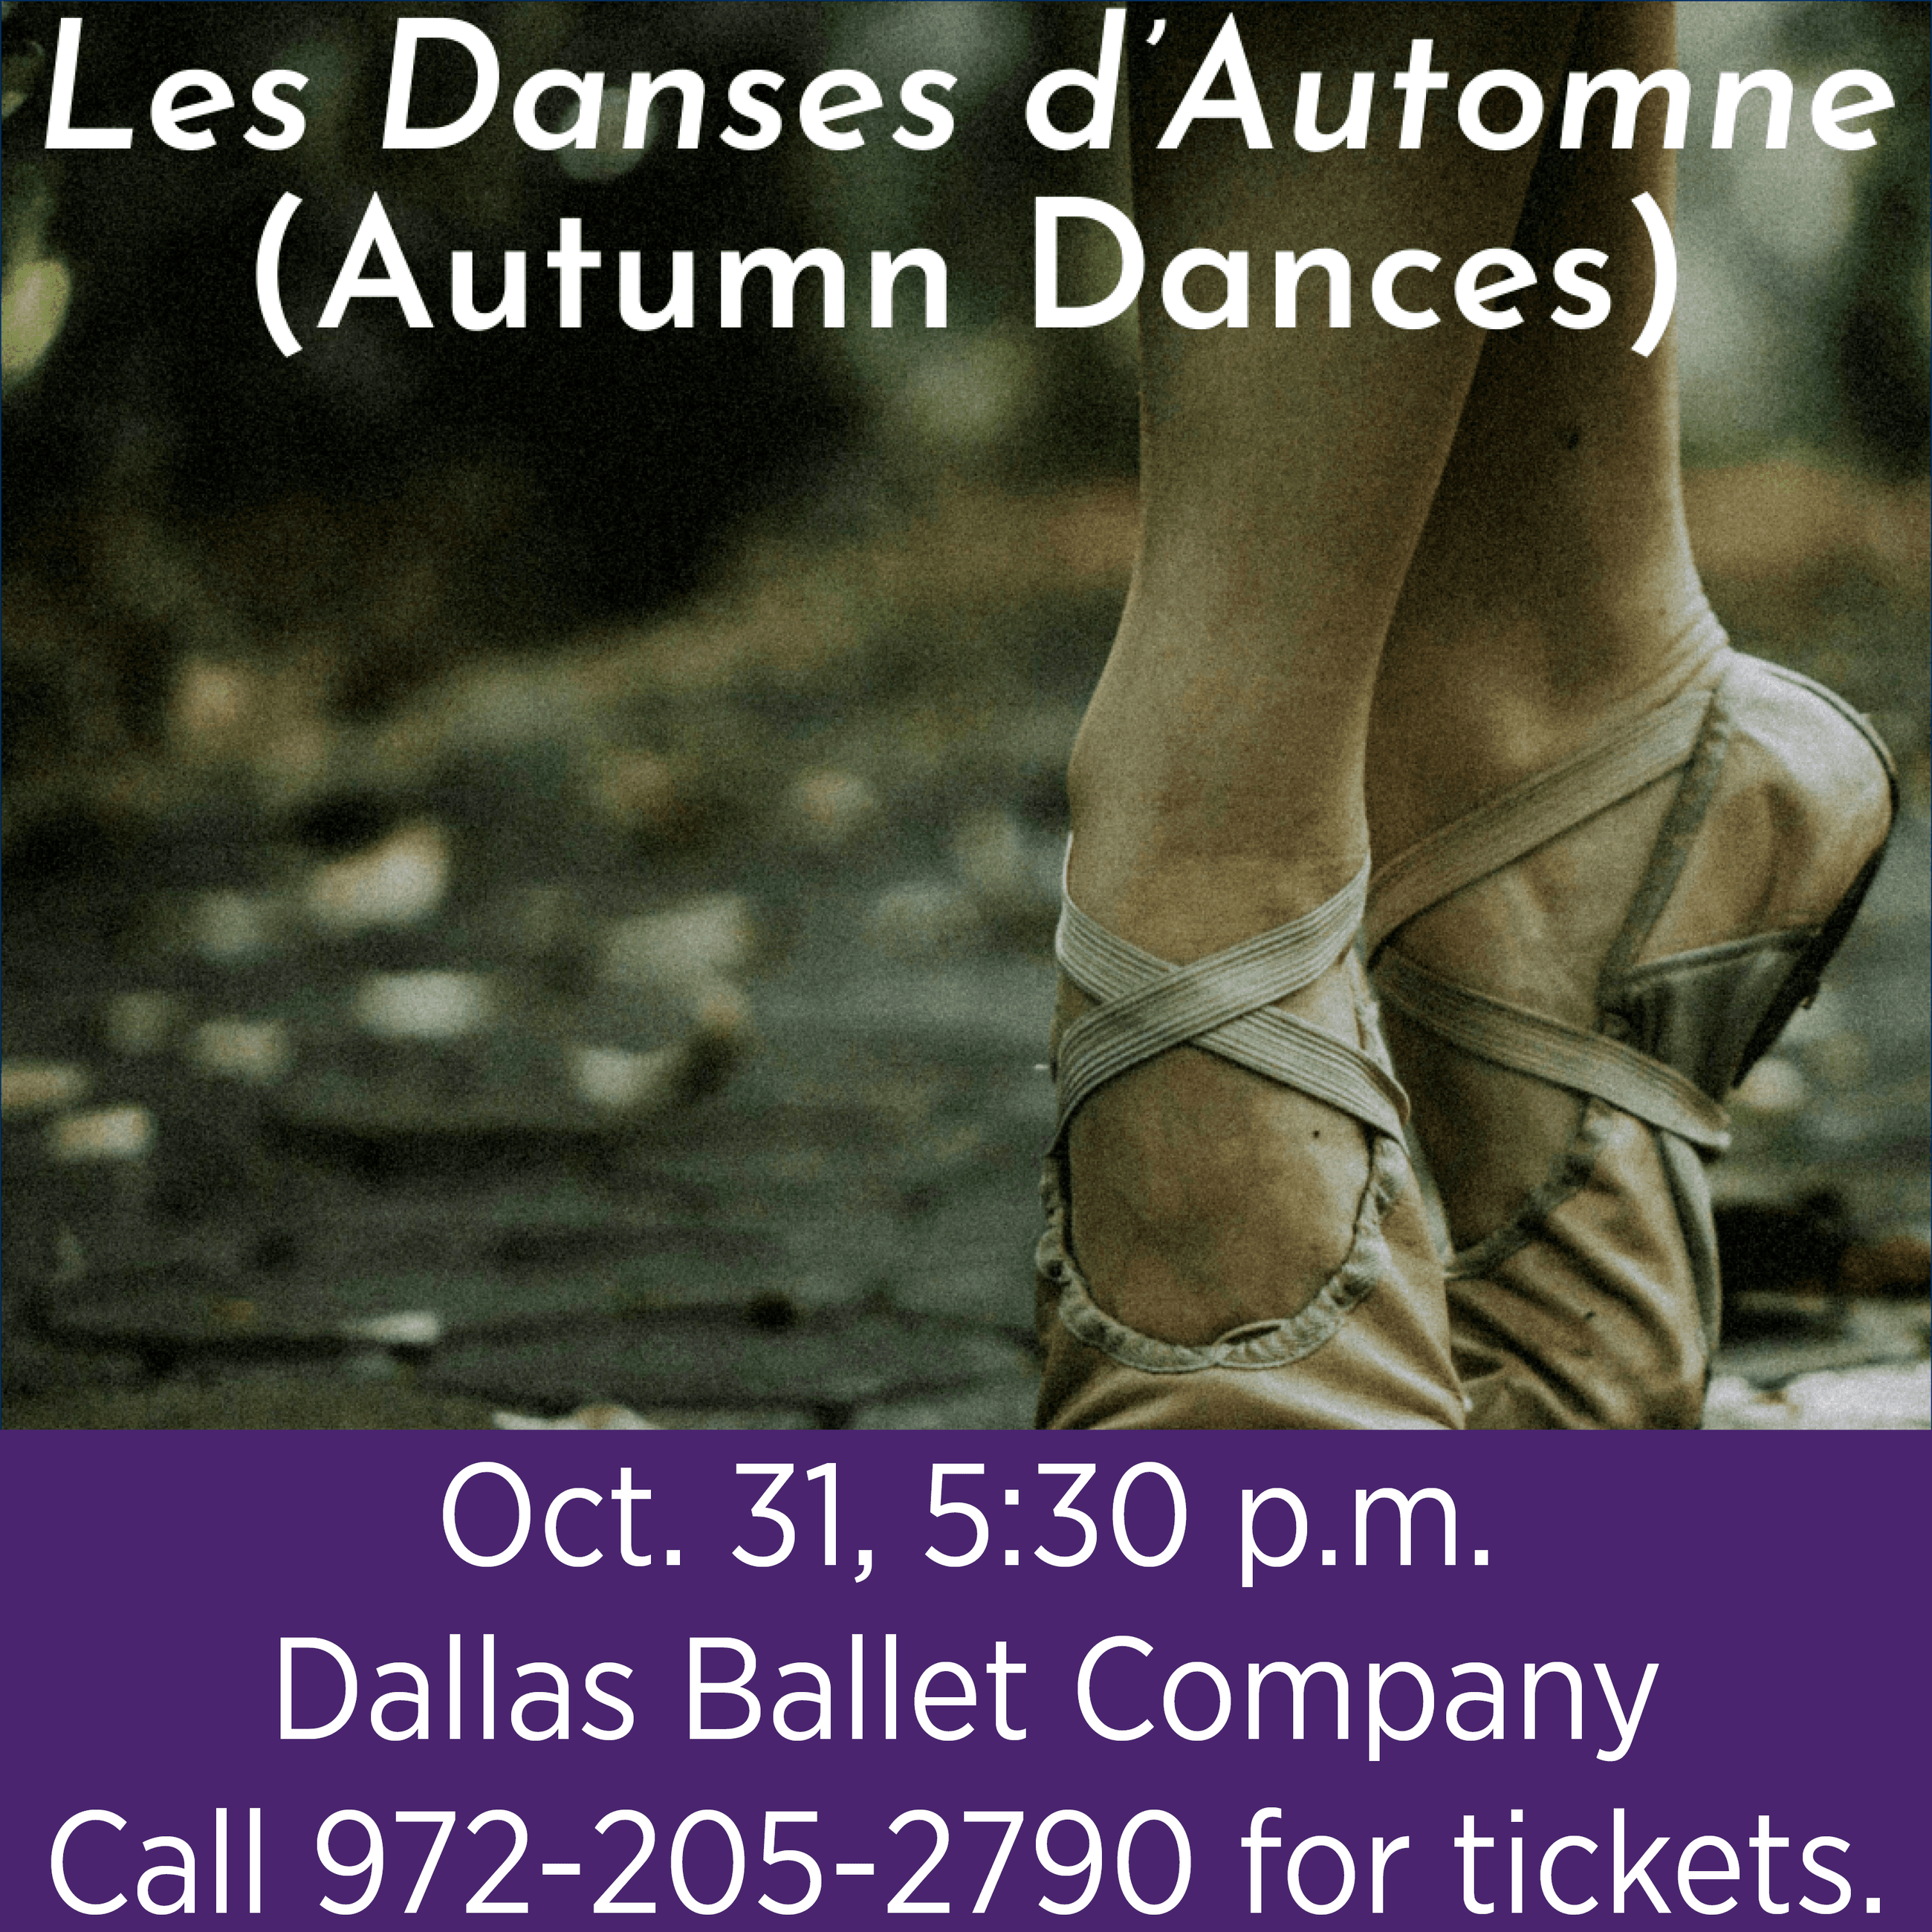 Les Danses d'Automne (Autumn Dances) - for tickets call 972-205-2790